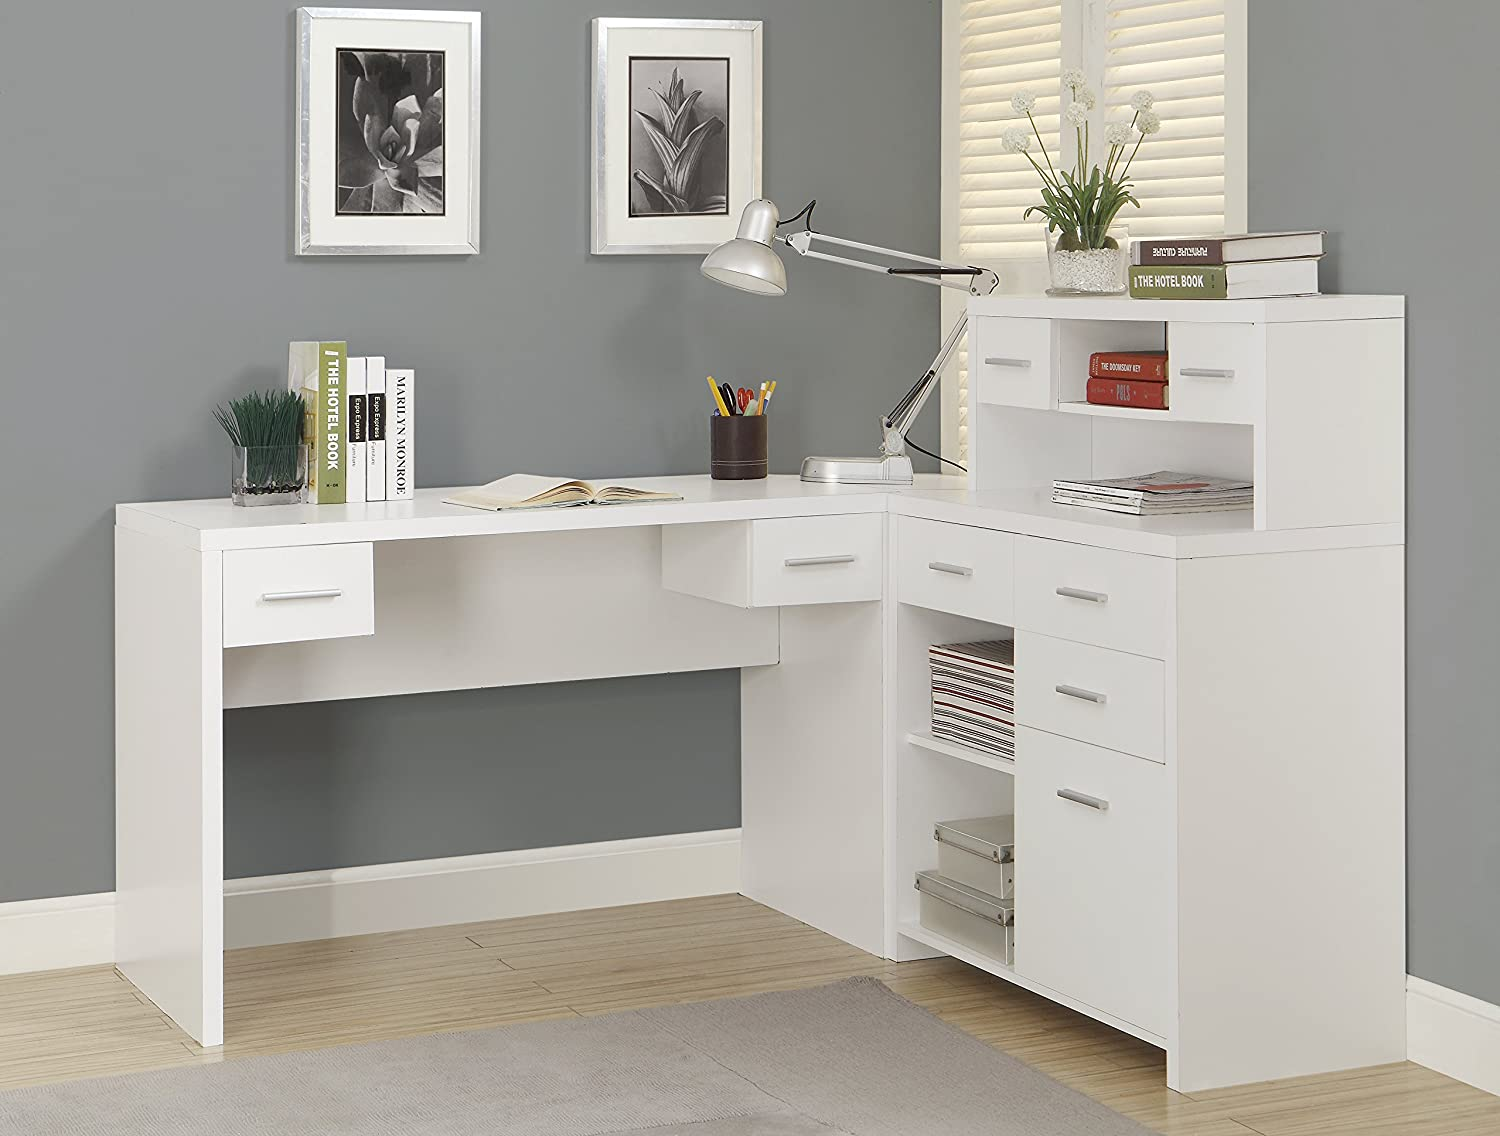 Monarch hollow core l shaped home office desk white amazon monarch hollow core l shaped home office desk white kitchen dining solutioingenieria